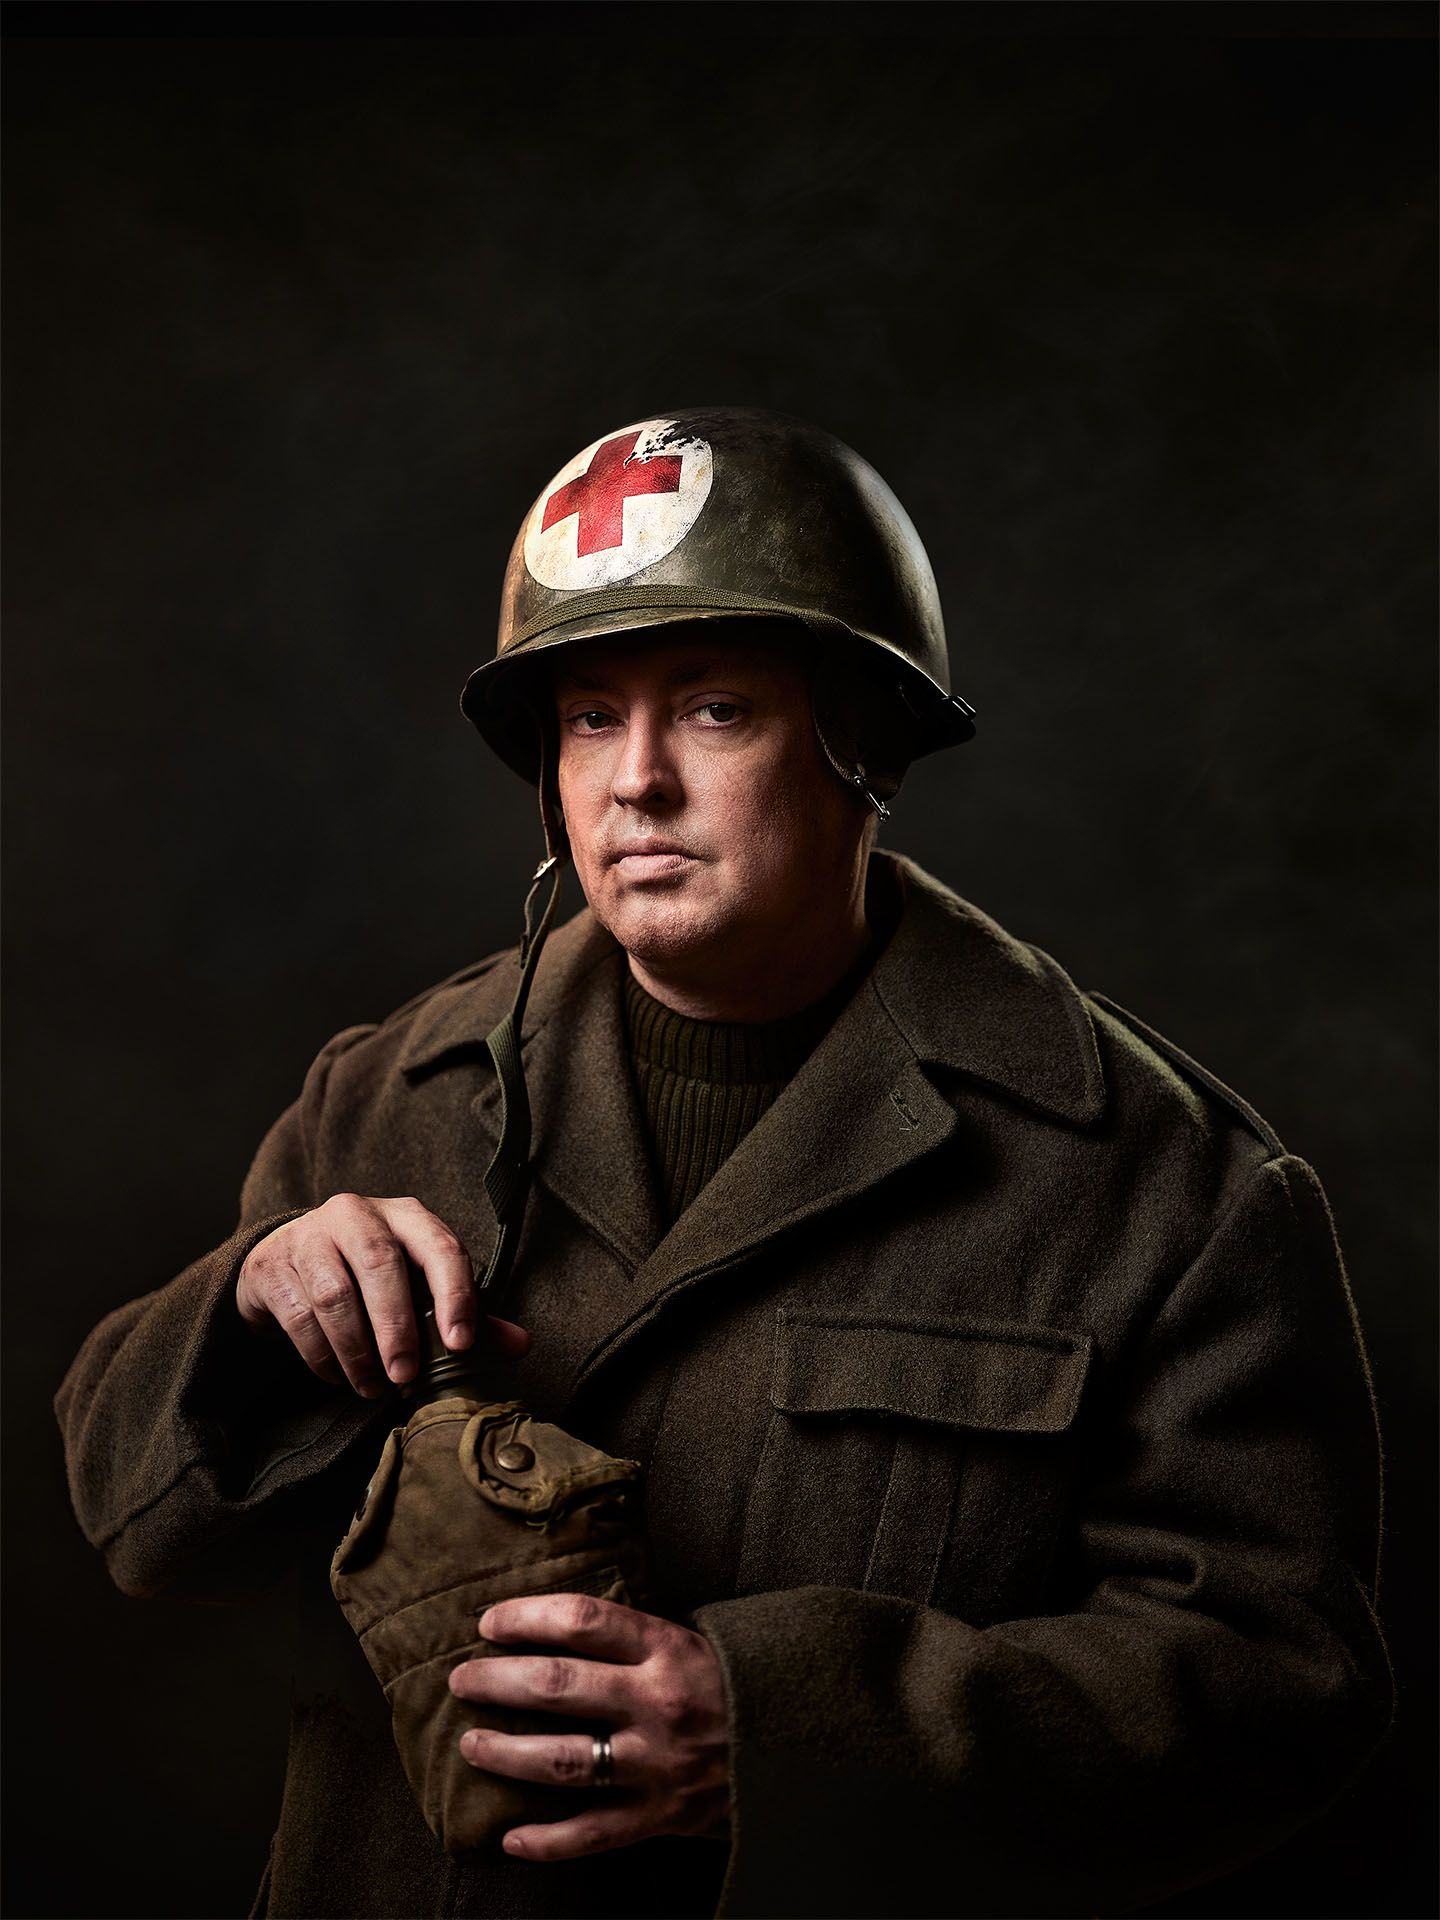 portrait of Mike Ward dressed as a world war one soldier holding gourd by Jocelyn Michel for Voir